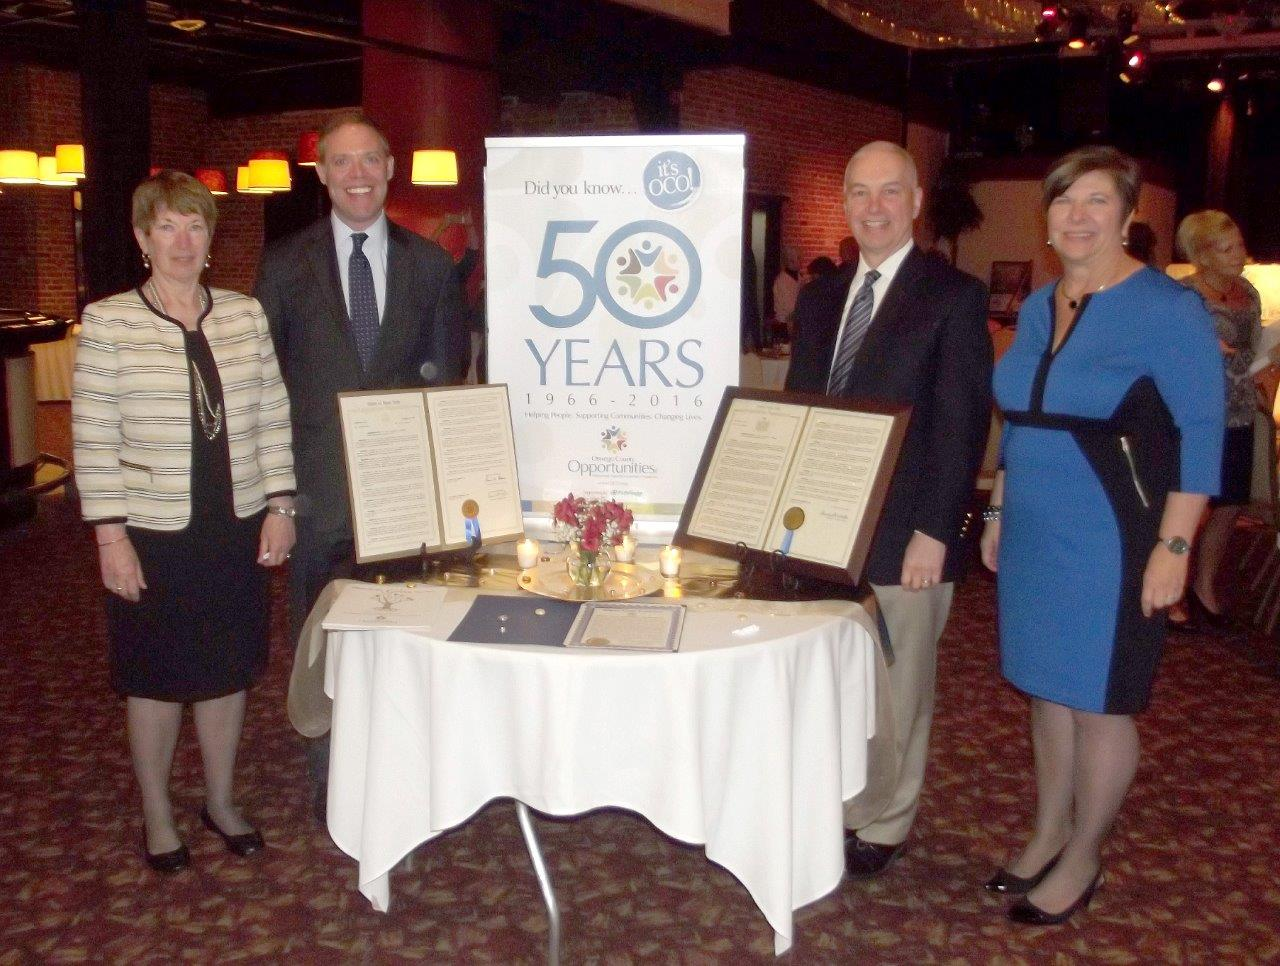 Assemblyman Will Barclay (R,C,I--Pulaski) and Assemblyman Bob Oaks (R,C�Macedon) recently congratulated Oswego County Opportunities on celebrating its 50th year anniversary at the organization�s annual meeting.  From left are President of the Board of Directors at OCO Connie Cosemento, Assemblyman Barclay, Assemblyman Oaks, and OCO Executive Director Diane Cooper-Currier.